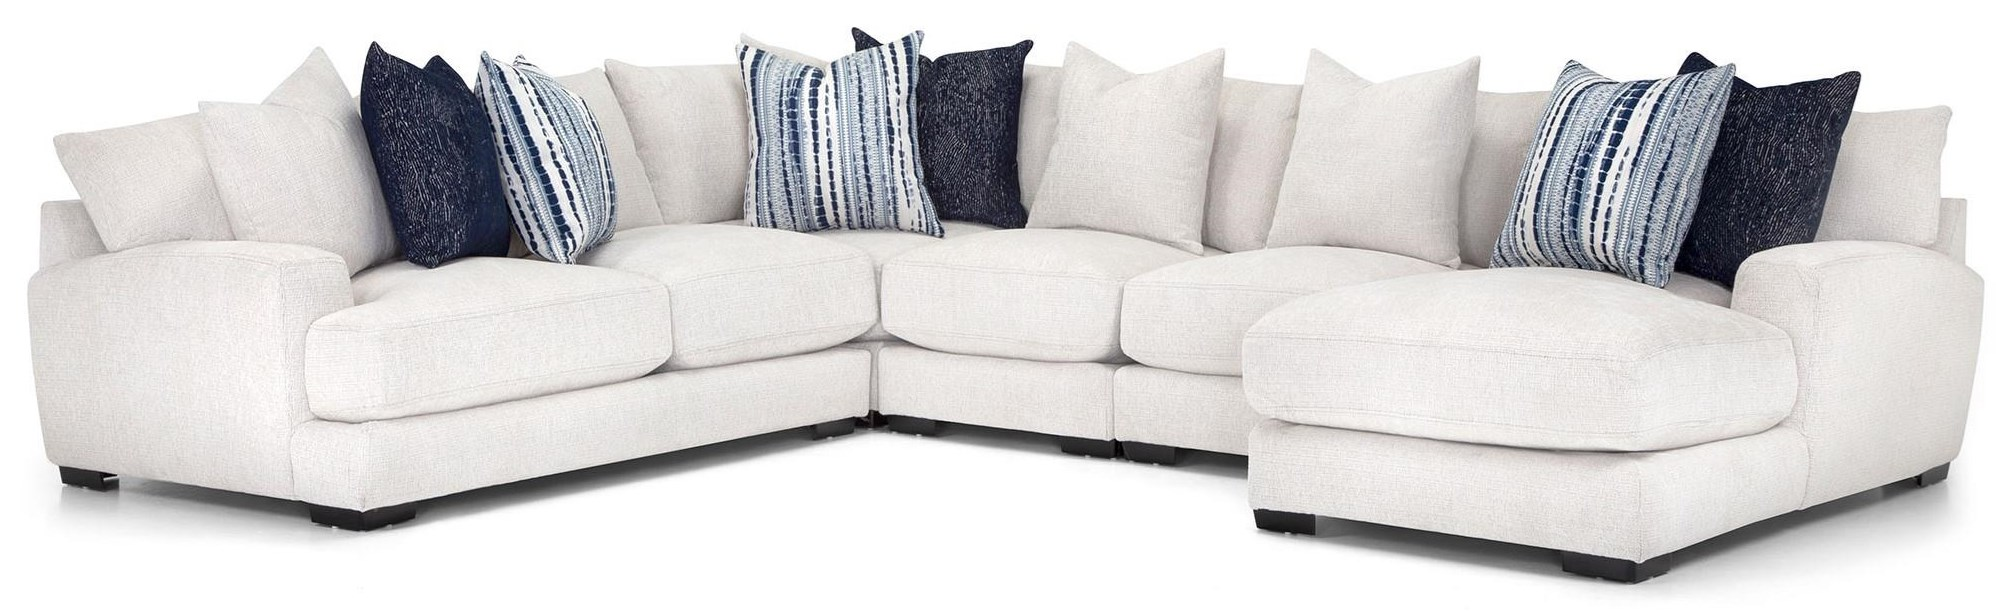 903 5 Pc sectional -White by Franklin at Furniture Fair - North Carolina